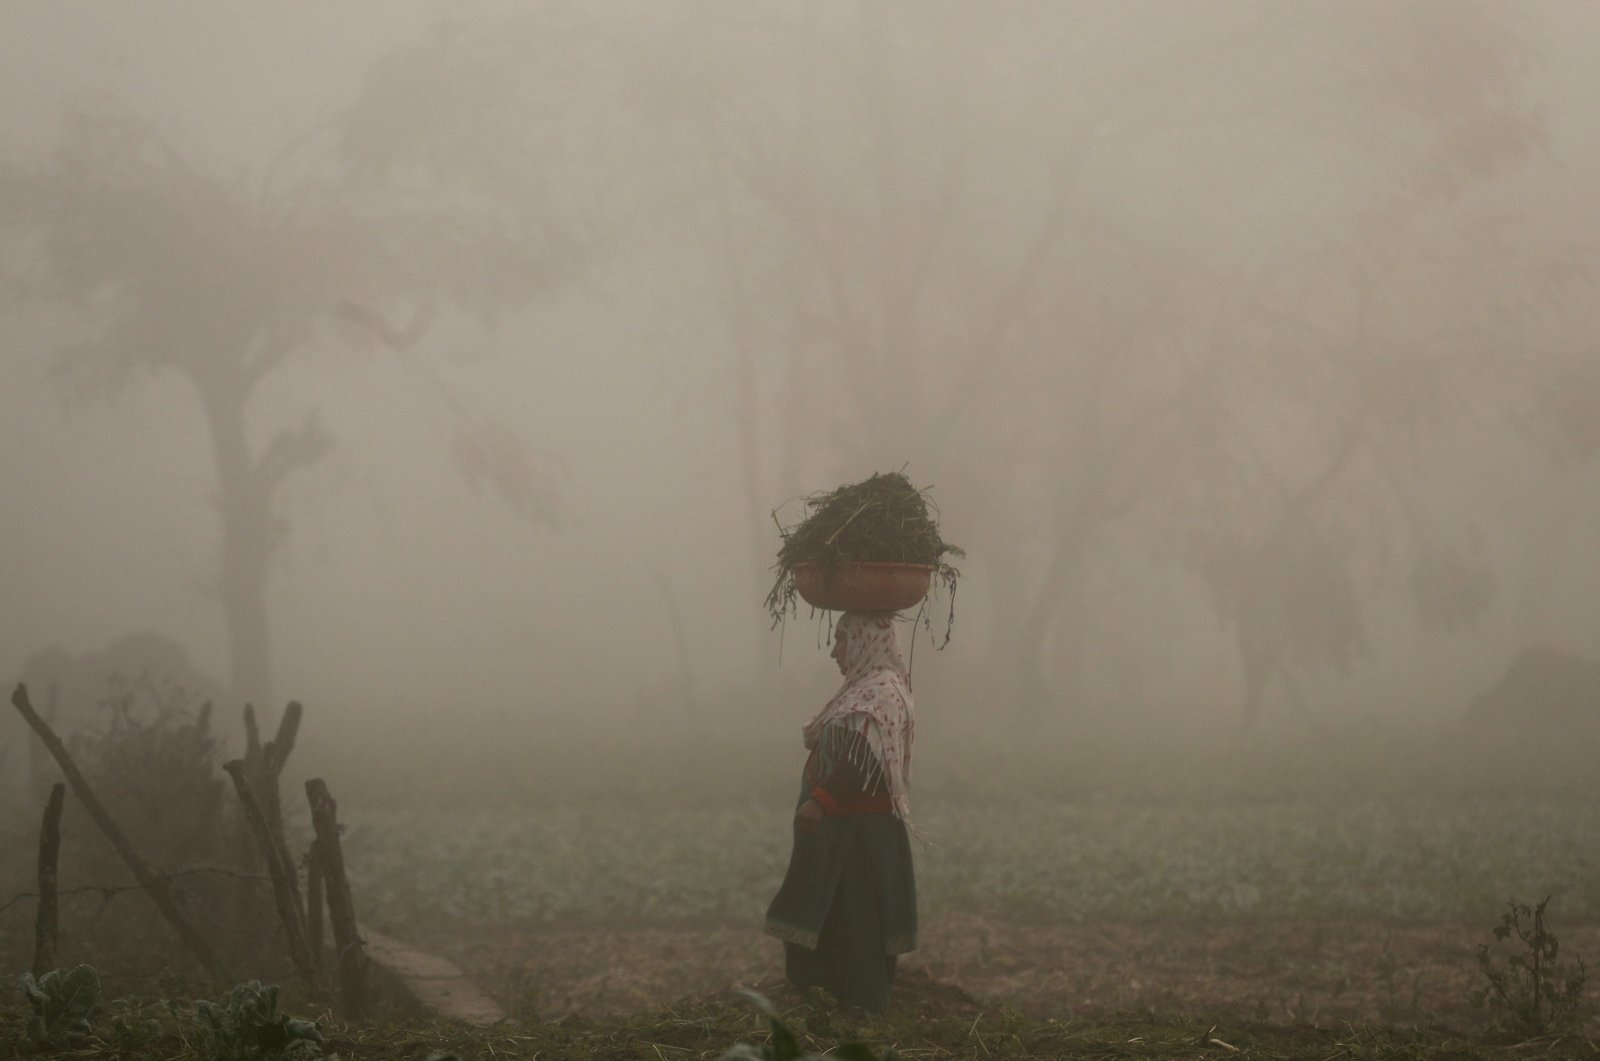 A woman carries a basket on her head through a field of vegetables on a foggy morning in the province of Srinagar, Kashmir, Nov. 20, 2019. (Reuters Photo)